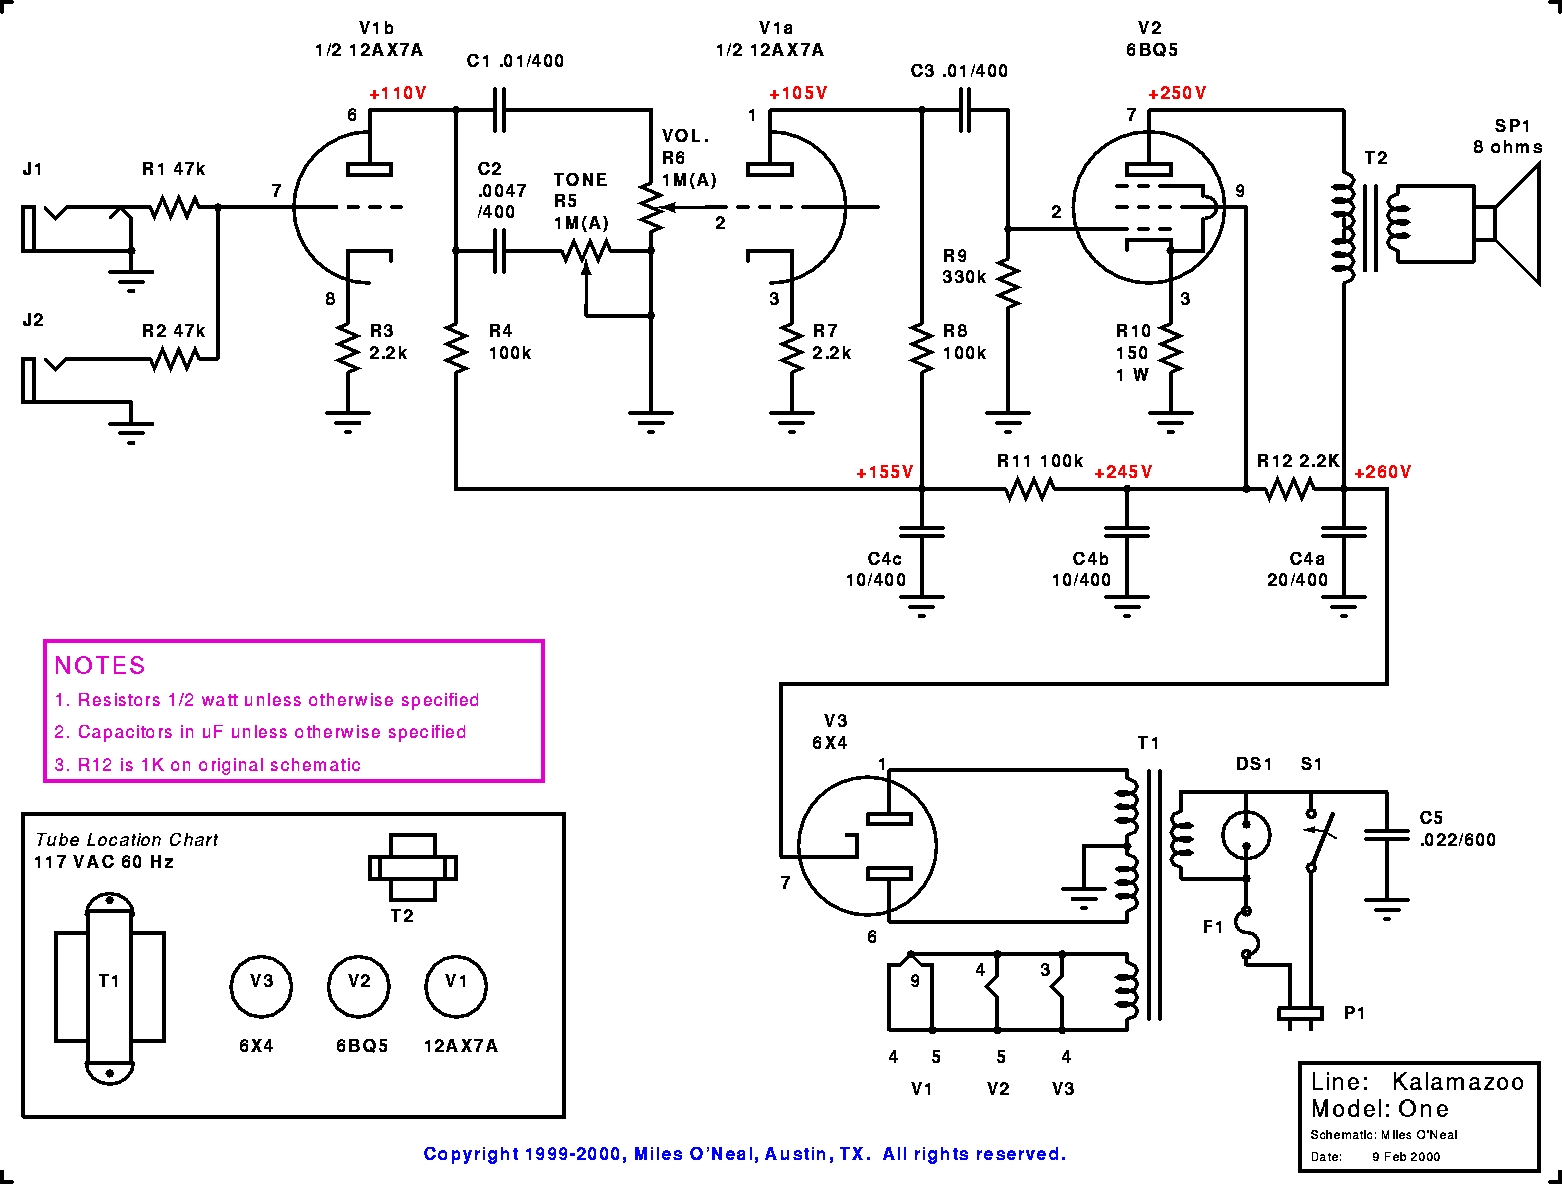 schem new kalamazoo amp field guide model 1 schematic Simple Electrical Wiring Diagrams at cos-gaming.co